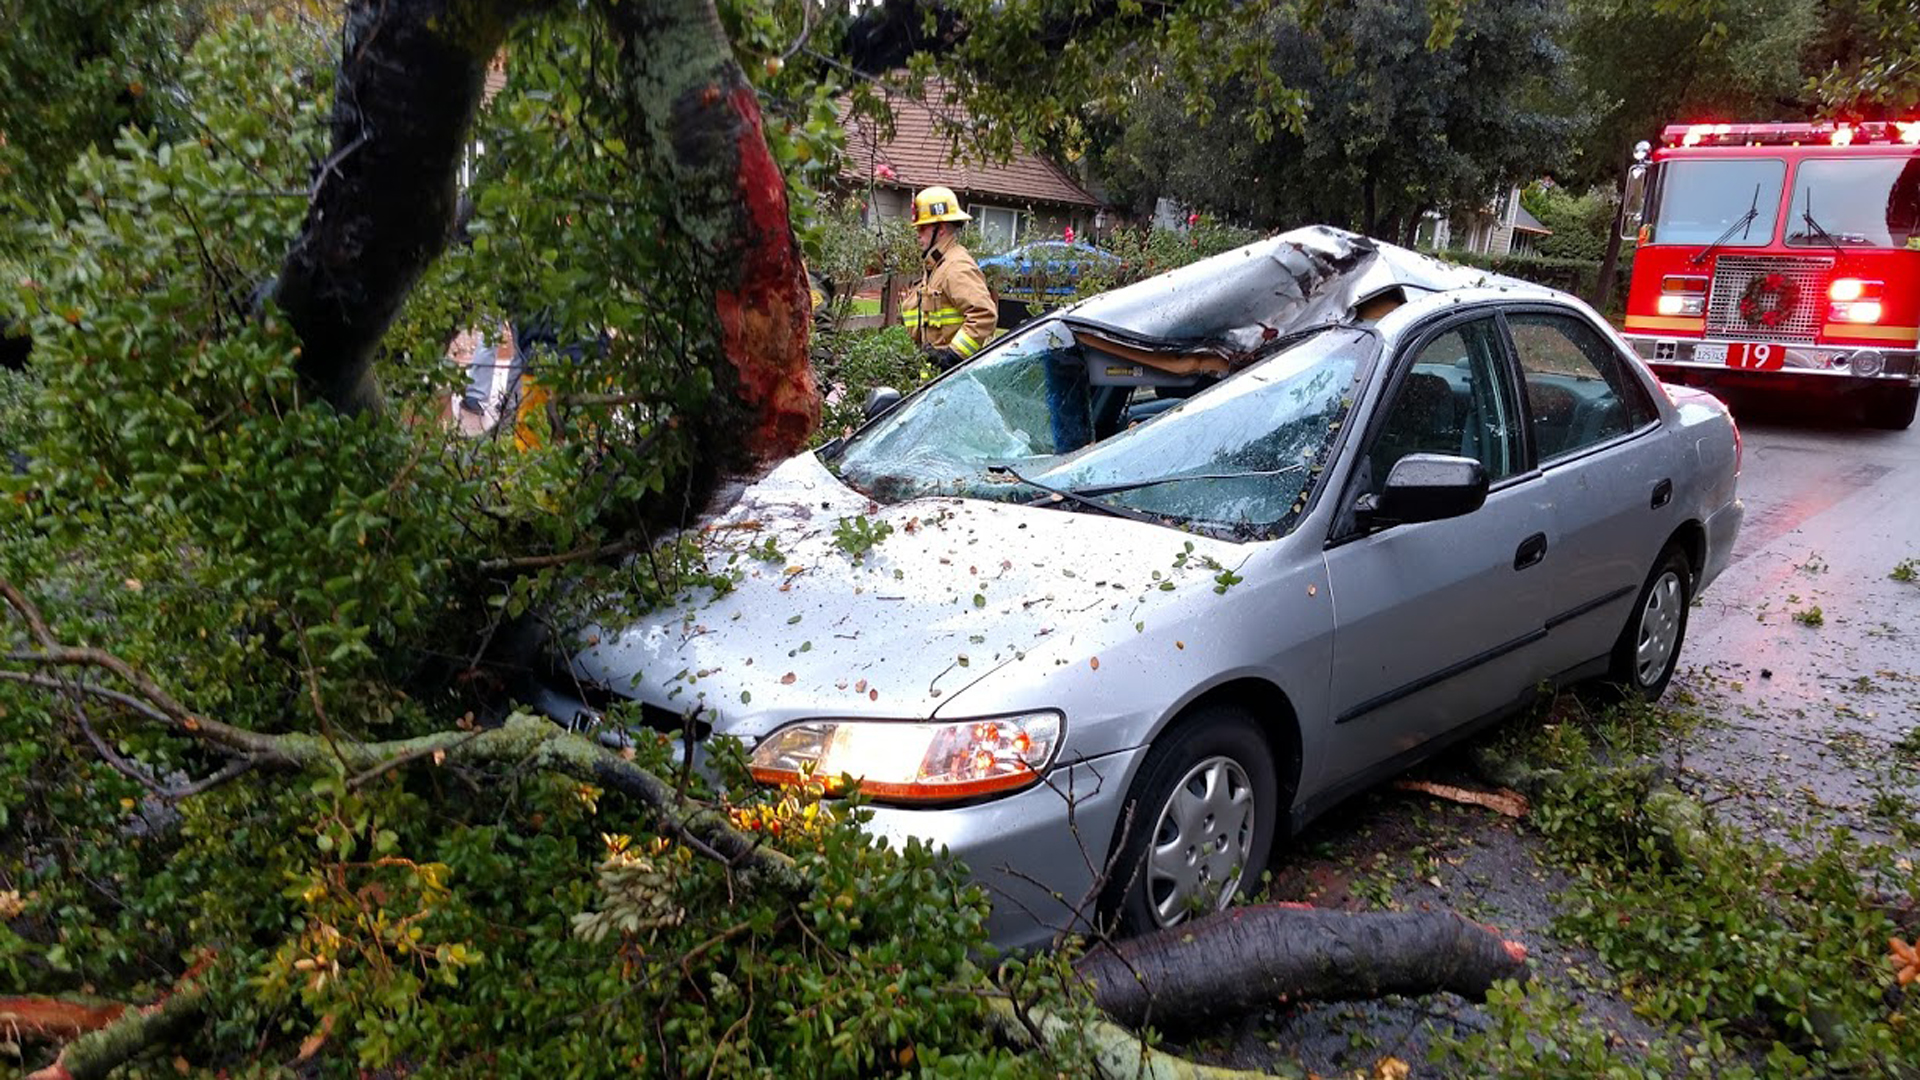 A tree toppled onto a car in La Canada Flintridge on Dec. 23, 2019. The driver escaped unharmed. (Credit: Los Angeles County Sheriff's Department)